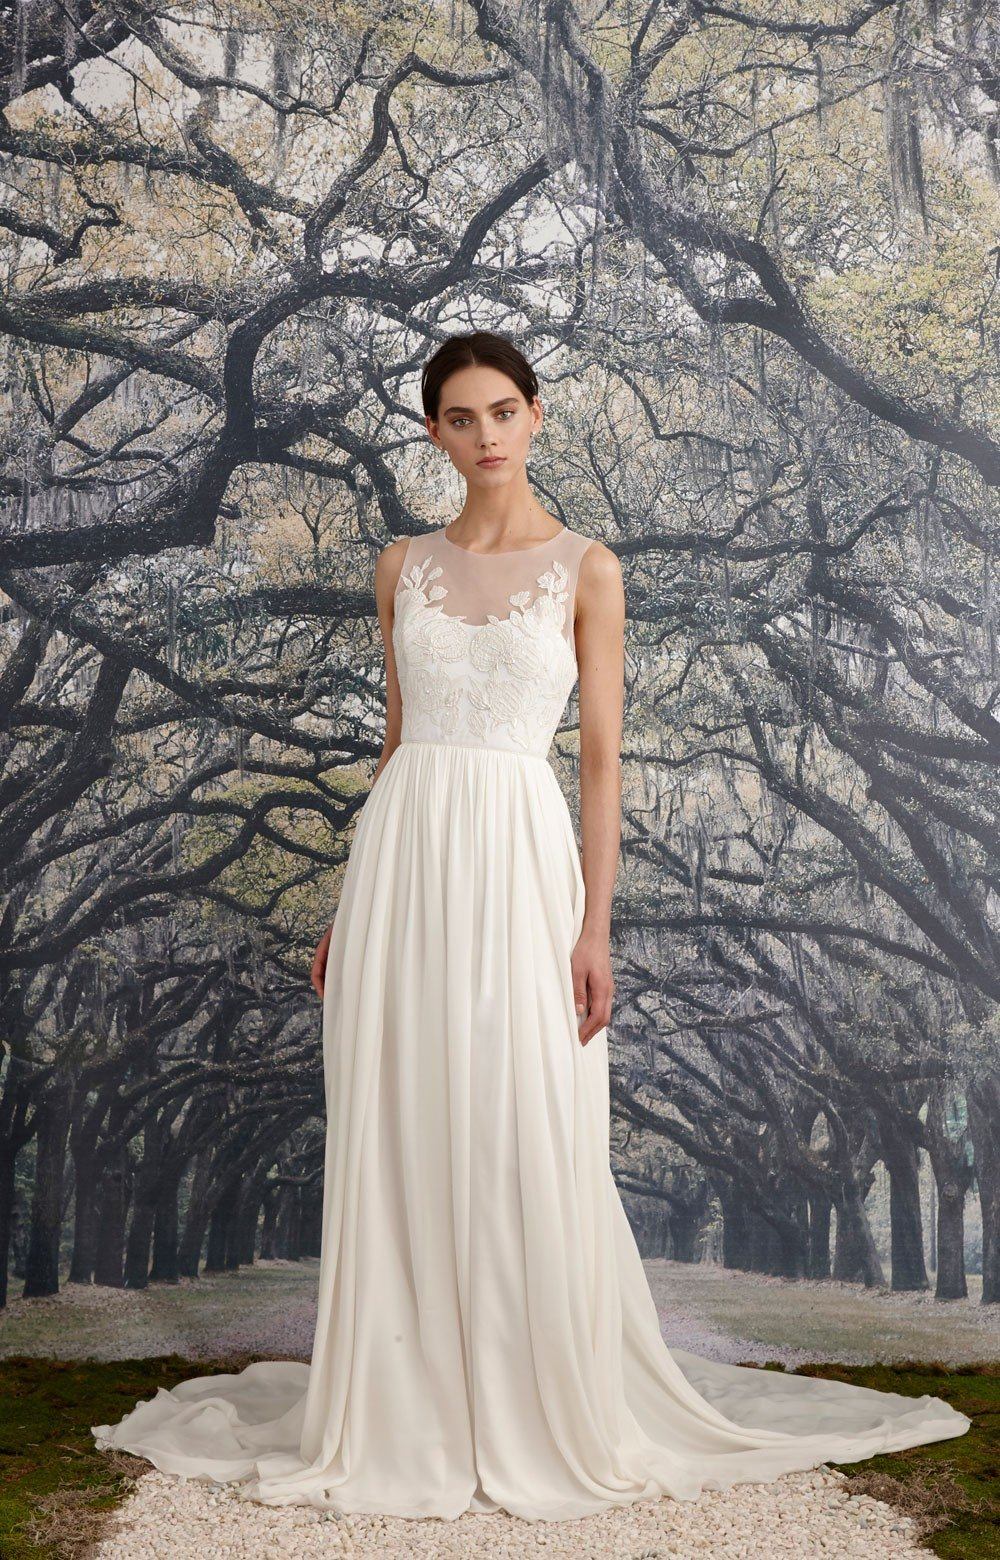 This A Line Beauty Will Fit Into The Day And On Body Of So Many Beautiful Brides Its Quite Versatile Design